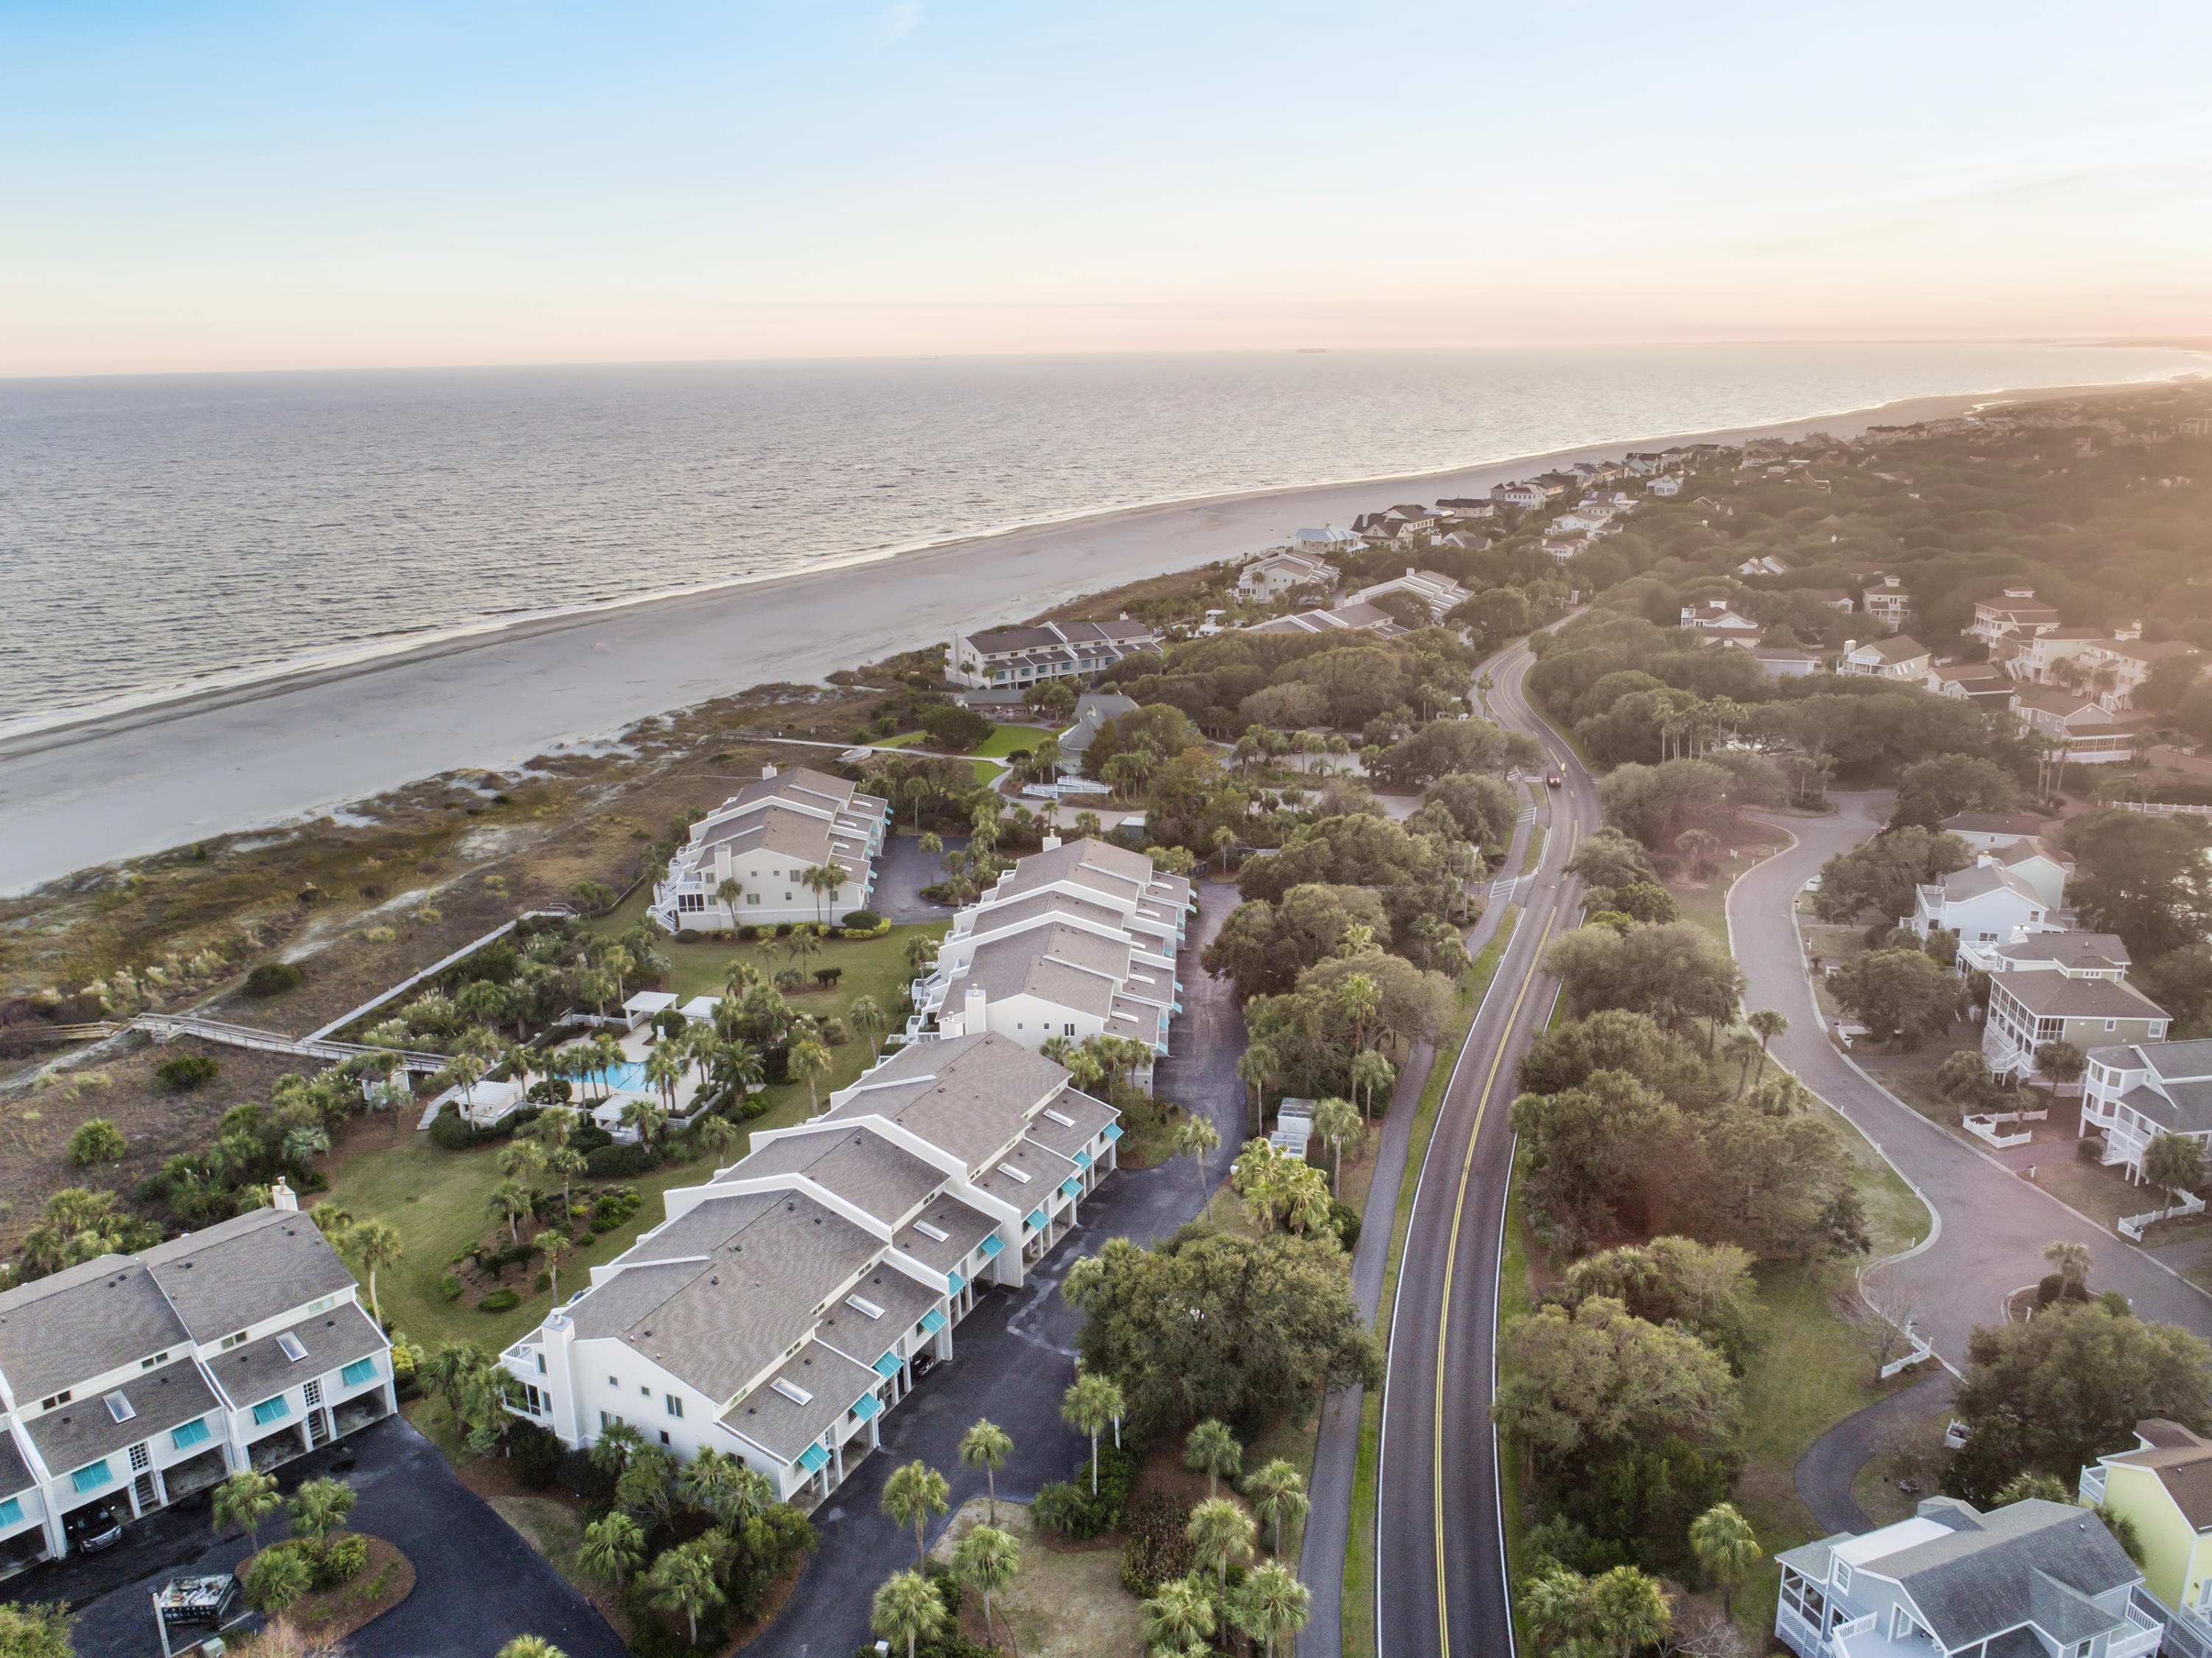 Beach Club Villas Homes For Sale - 51 Beach Club Villas, Isle of Palms, SC - 12